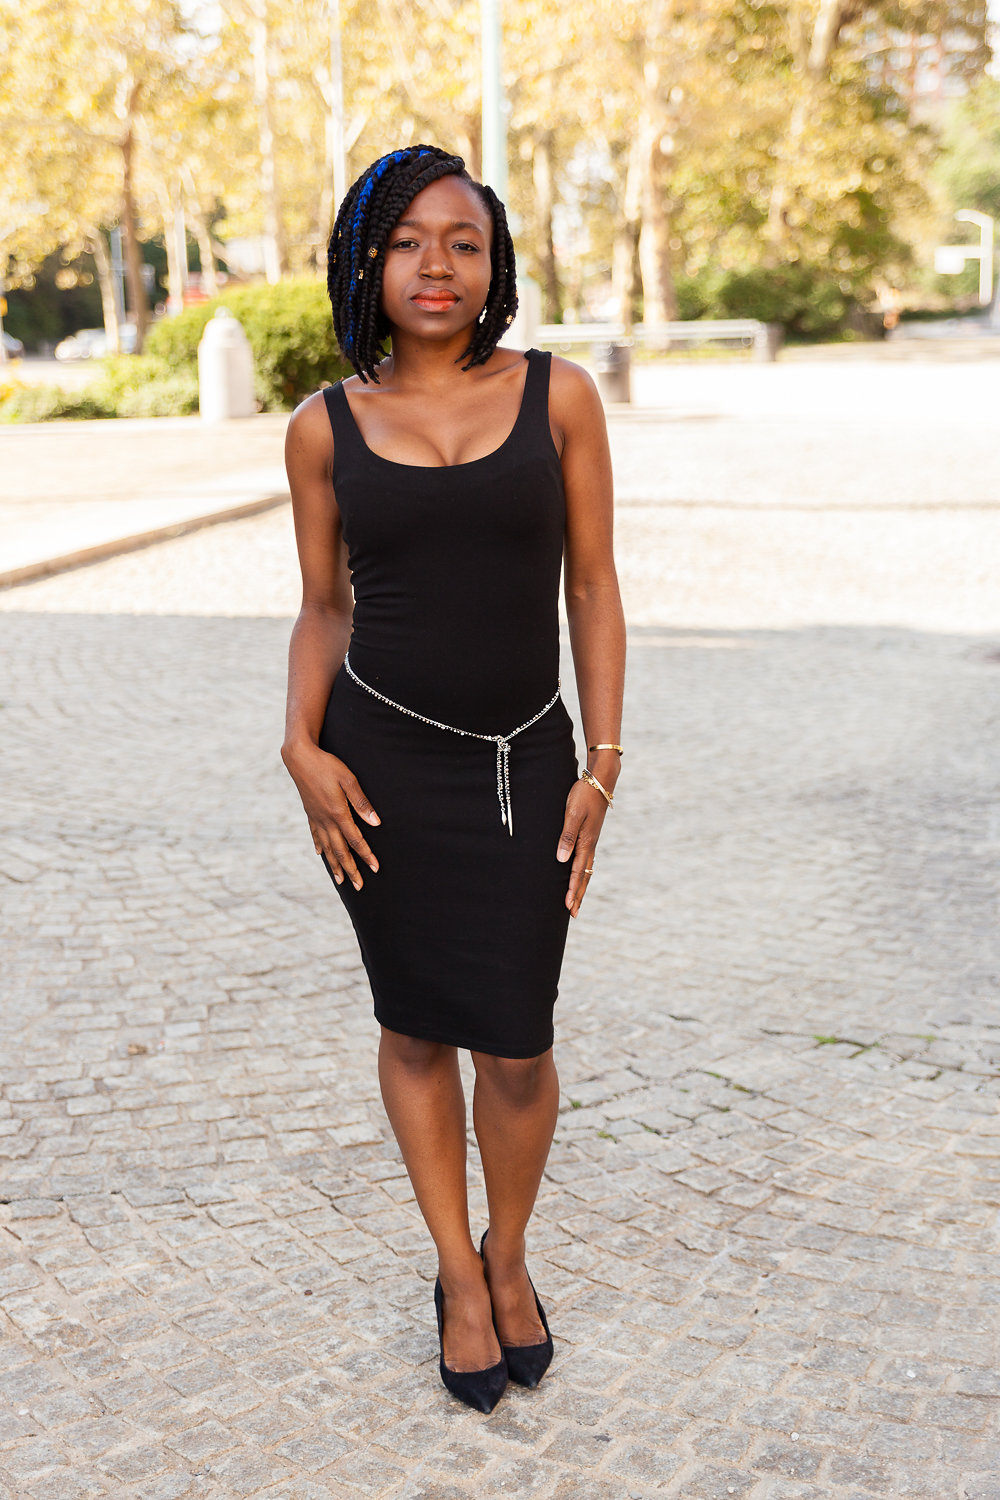 The Belt - The necklace has small weights at the end that keep it in place no matter how you style it. So don't worry about not having belt loops.Tie to your liking.This is a great addition to any dress to accentuate.